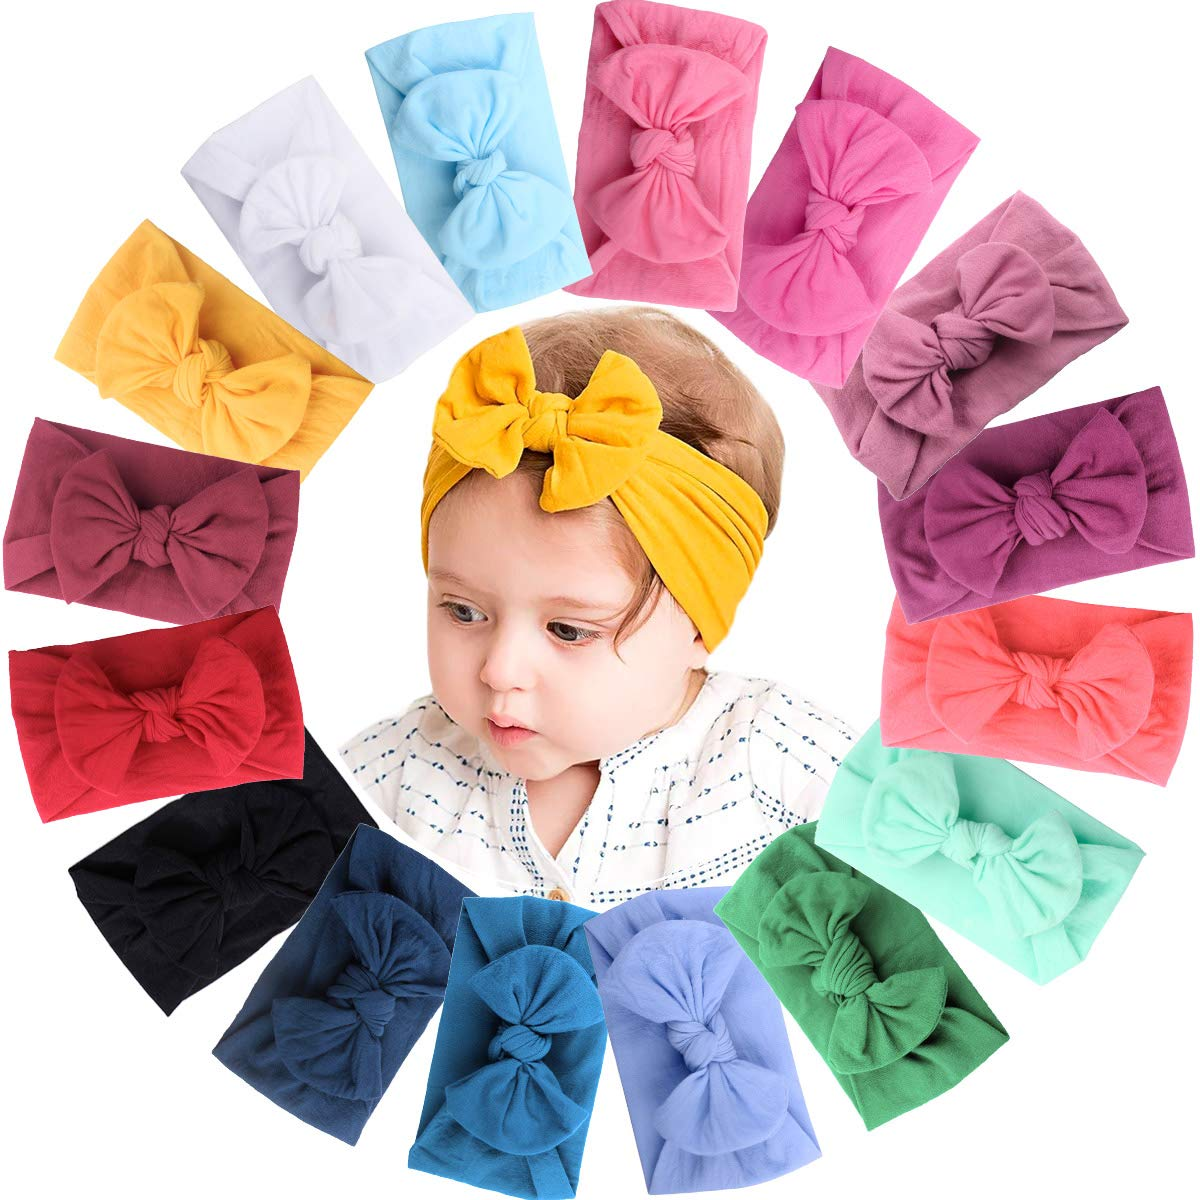 16 Colors Soft Wide Turban Baby Headbands with 4.5 inches Hair Bow Headwraps for Baby Girls Infants Newborn Hair Accessories Toddlers Kids and Children